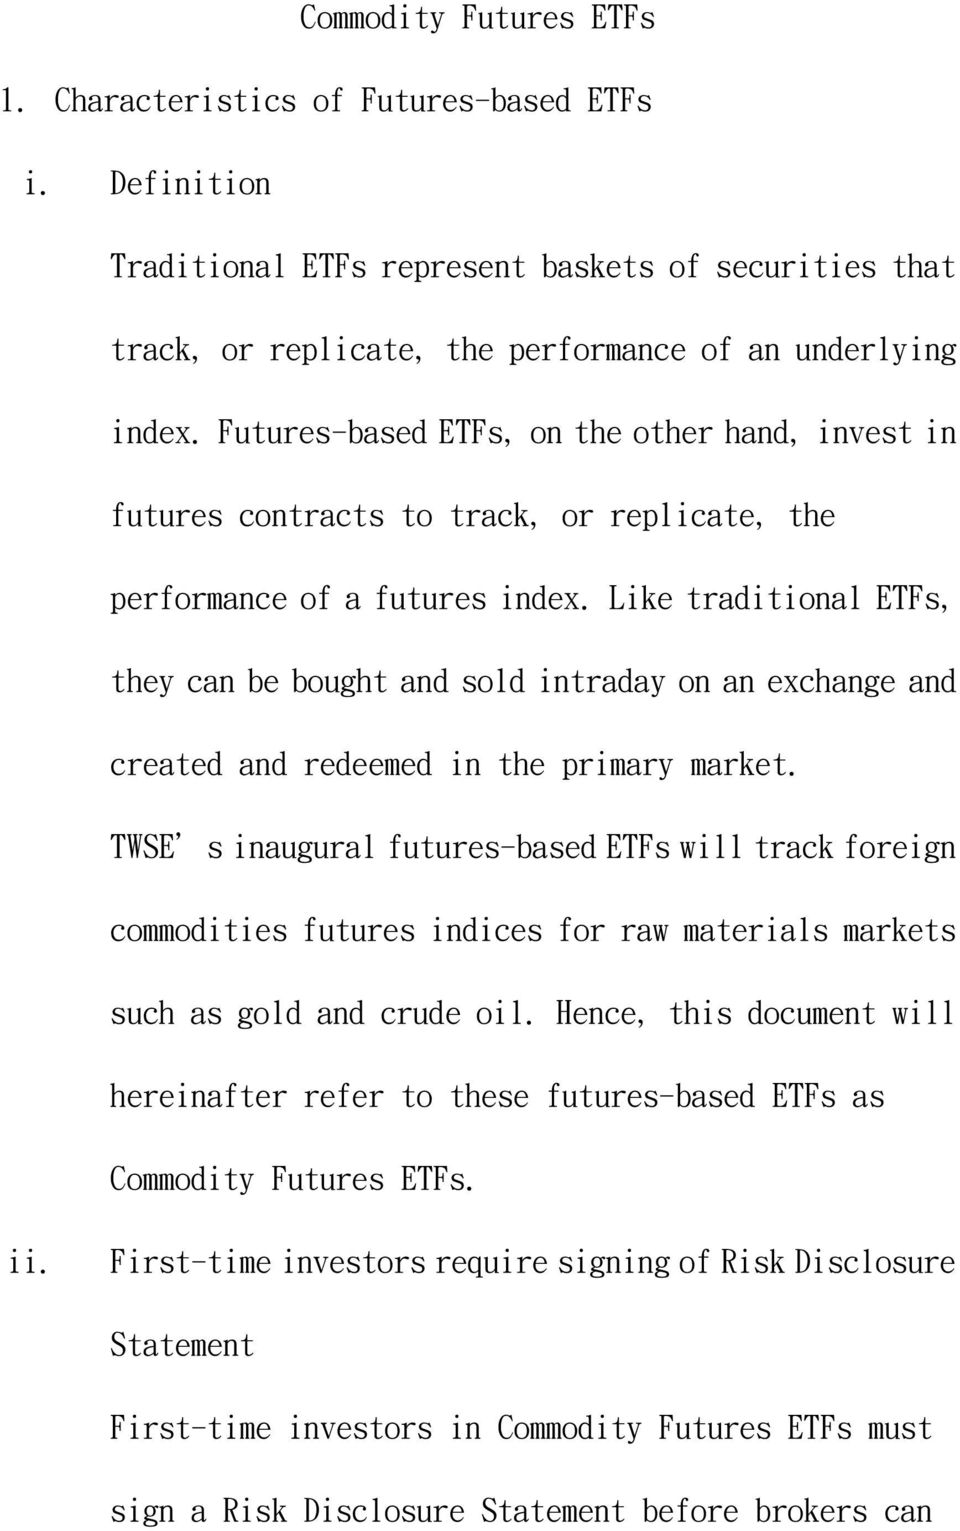 Like traditional ETFs, they can be bought and sold intraday on an exchange and created and redeemed in the primary market.